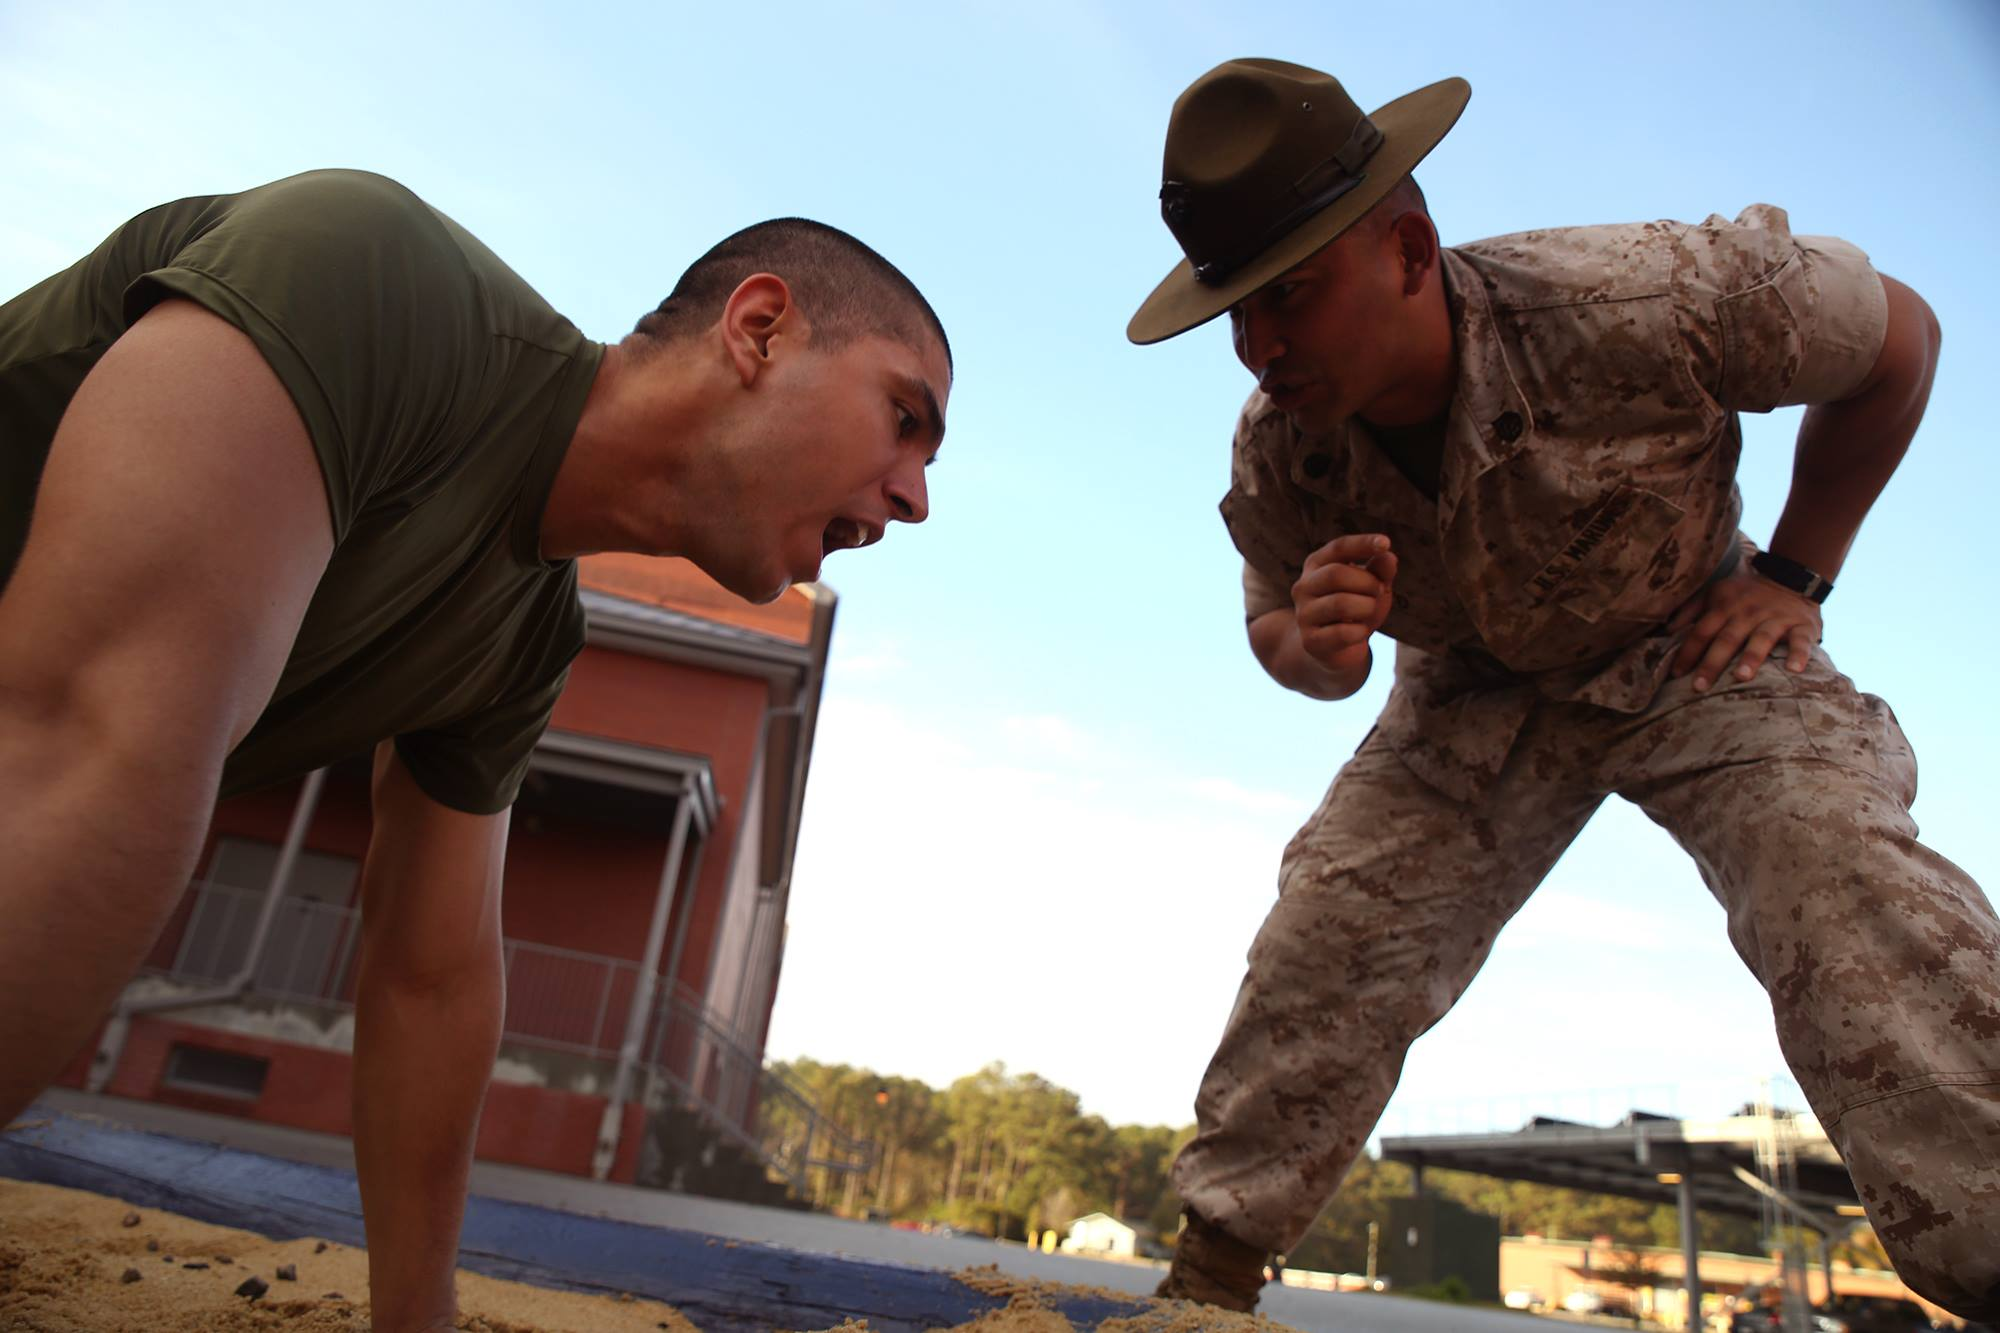 the marine corps The us marine corps has had to favor current readiness over modernization due to budget cuts learn why from the 2016 index of military strength.